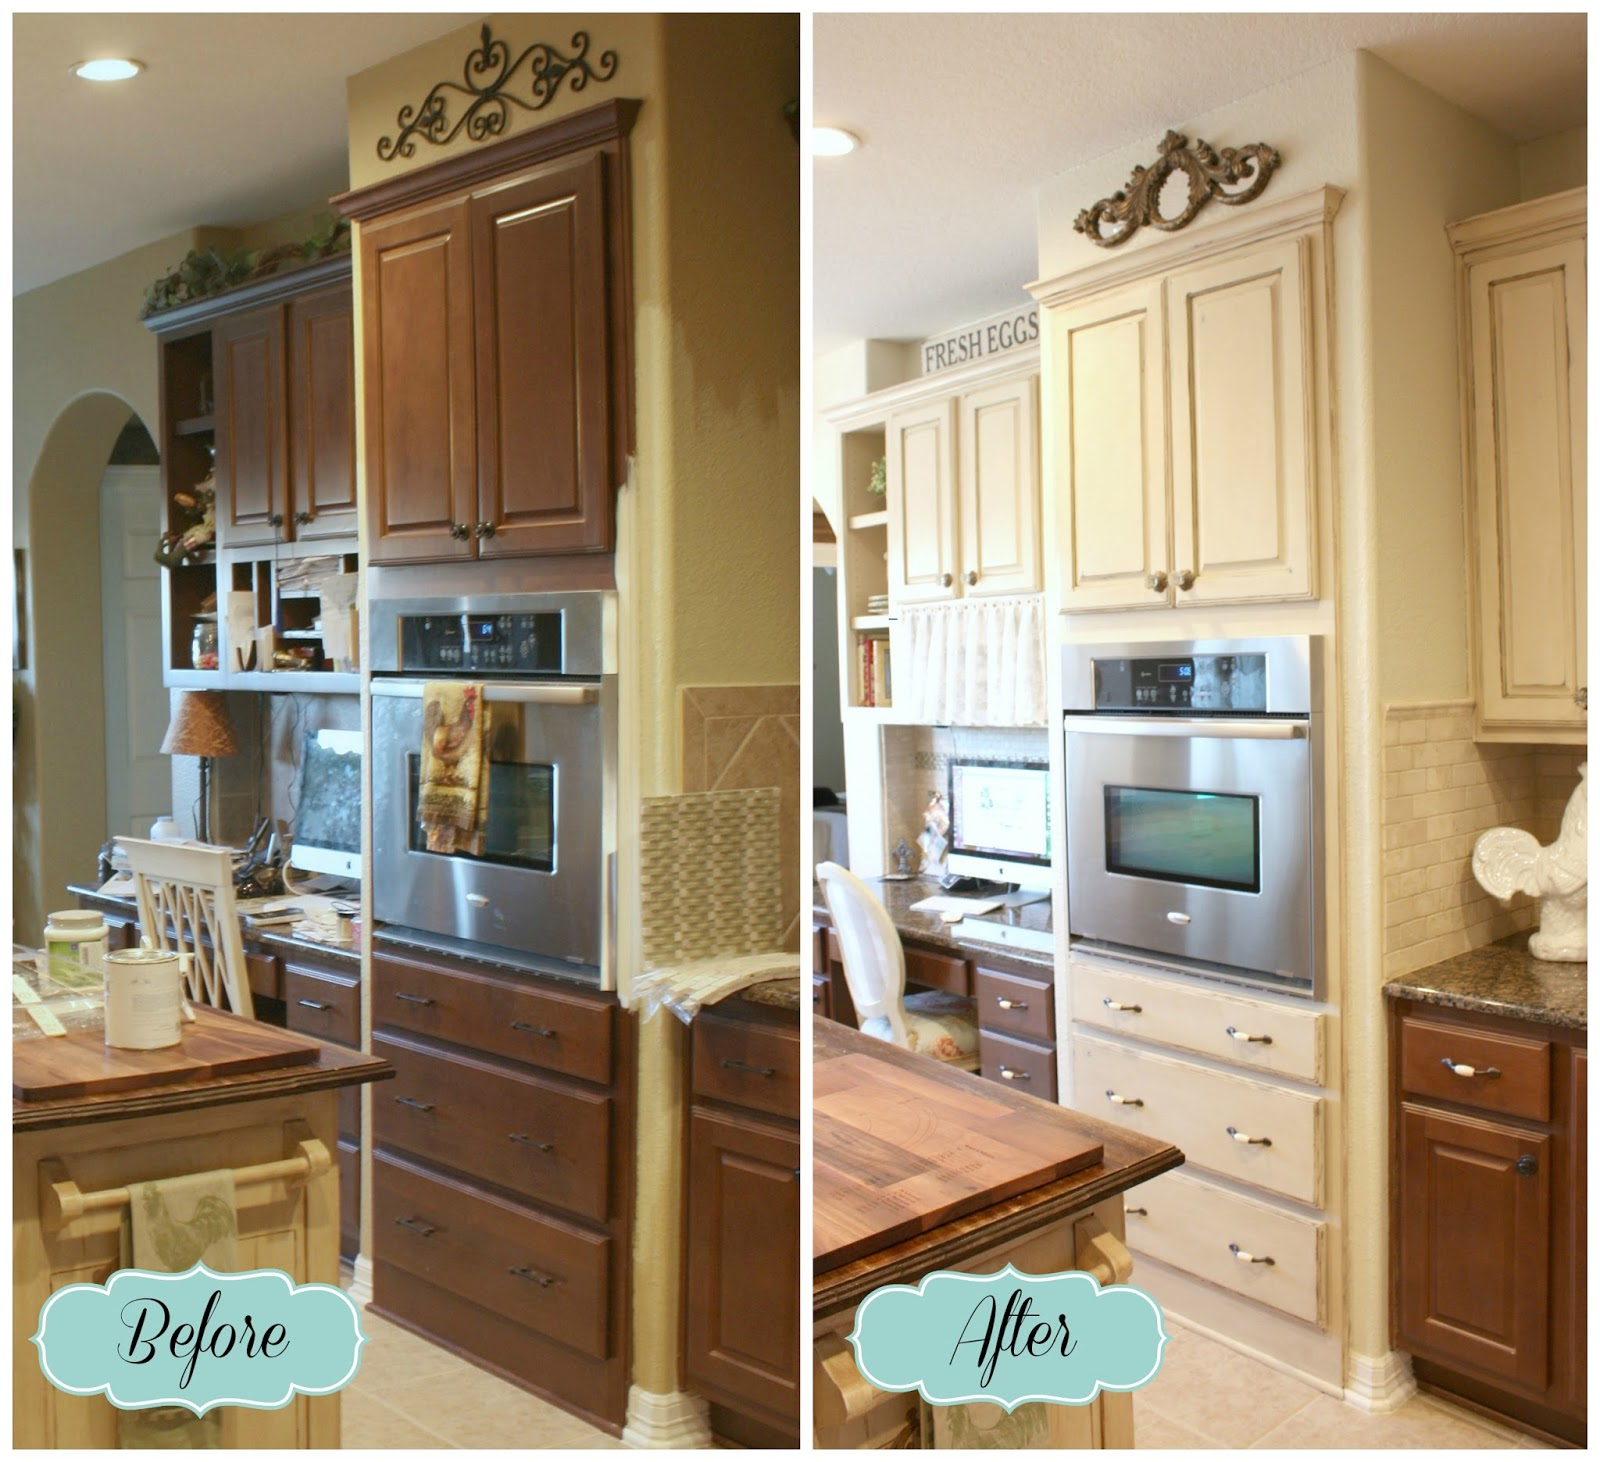 From my front porch to yours french farmhouse diy kitchen for Cabinets before and after